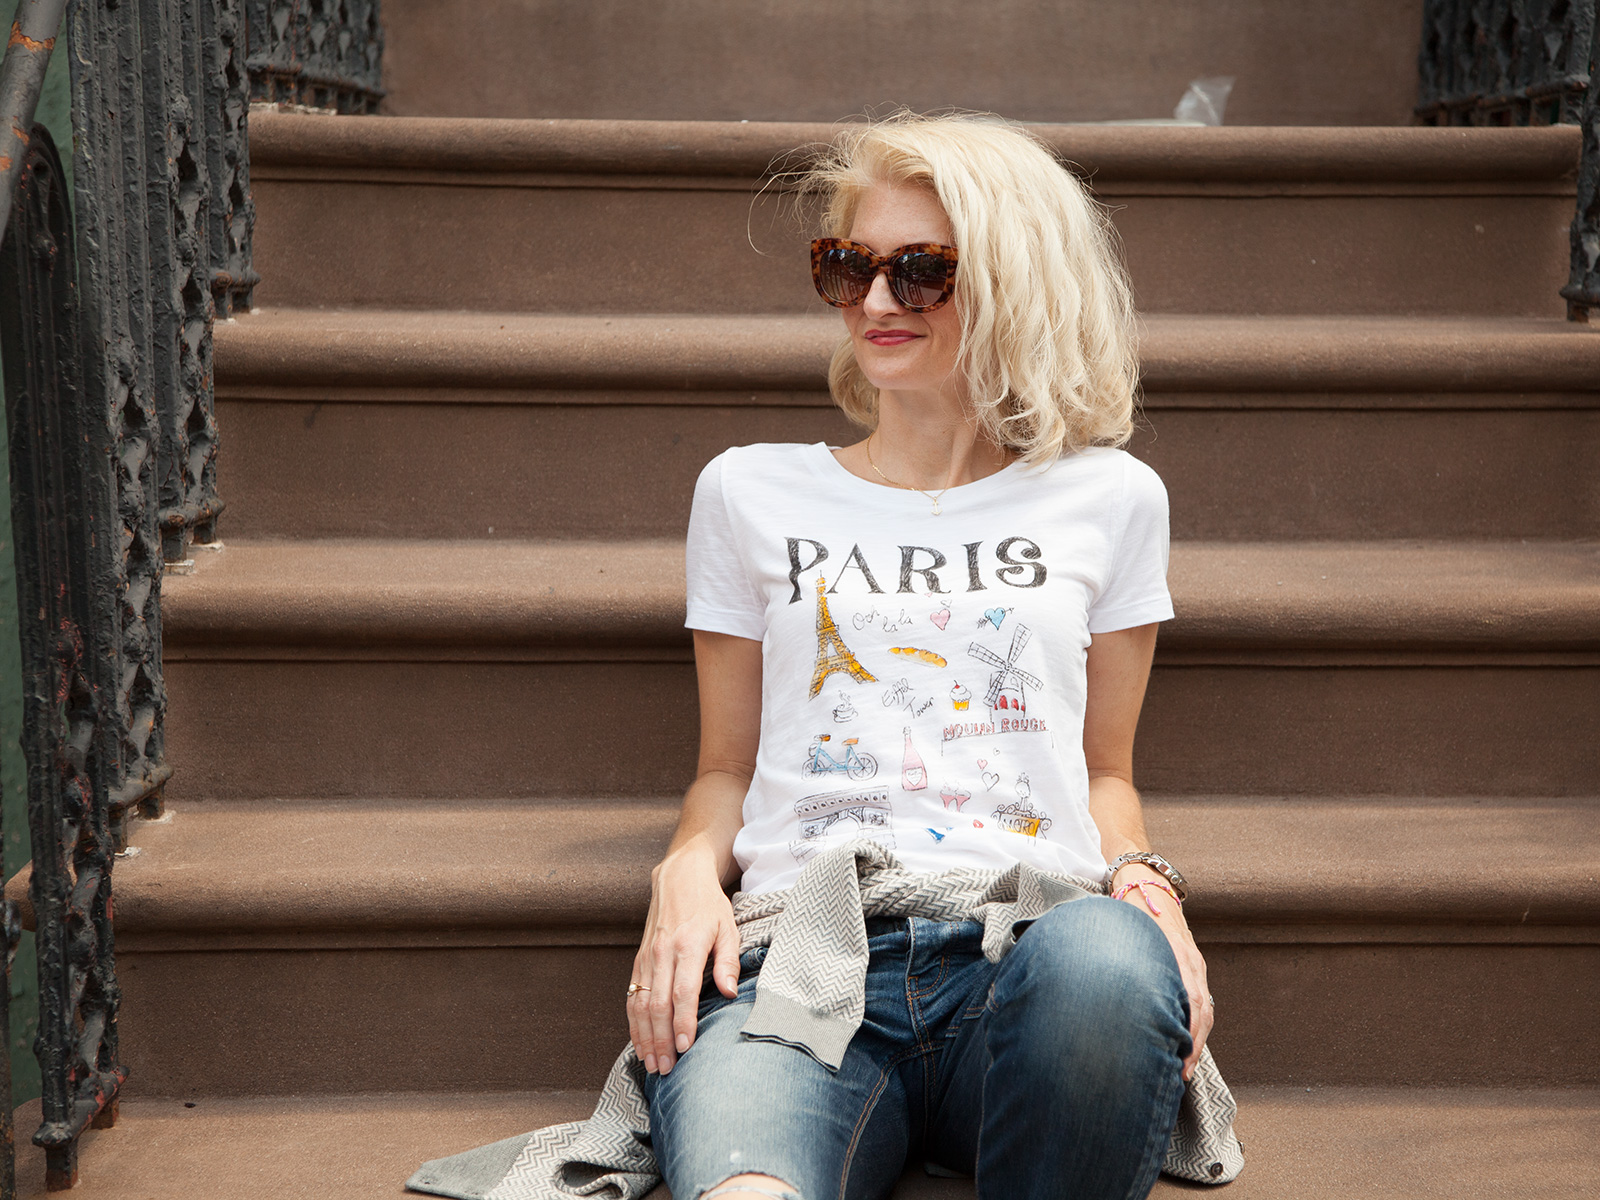 DIY Paris Doodle T-Shirt Photo 2 by Trinkets in Bloom